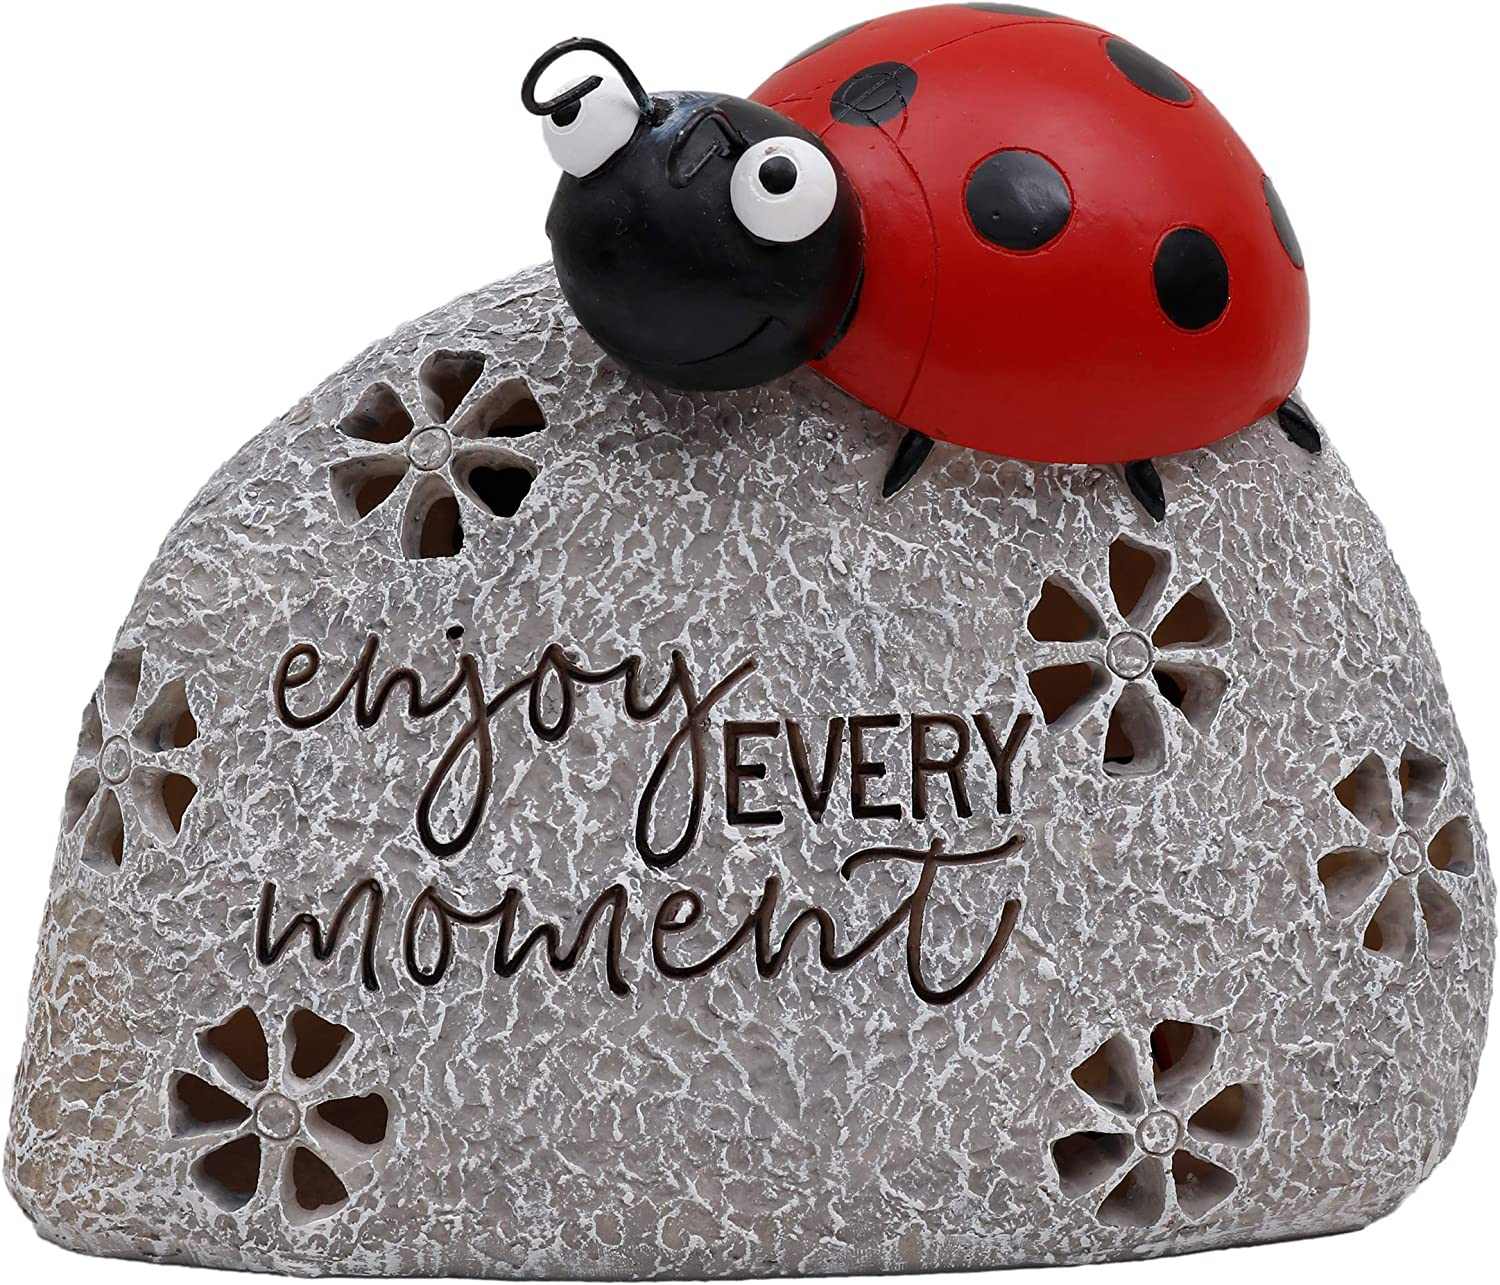 TERESA'S COLLECTIONS 5.1 Inch Ladybug On Stone Garden Statues, Enjoy Every Moment Fairy Garden Figurine with Solar Powered Garden Lights for Outdoor Halloween Fall Patio Yard Decorations